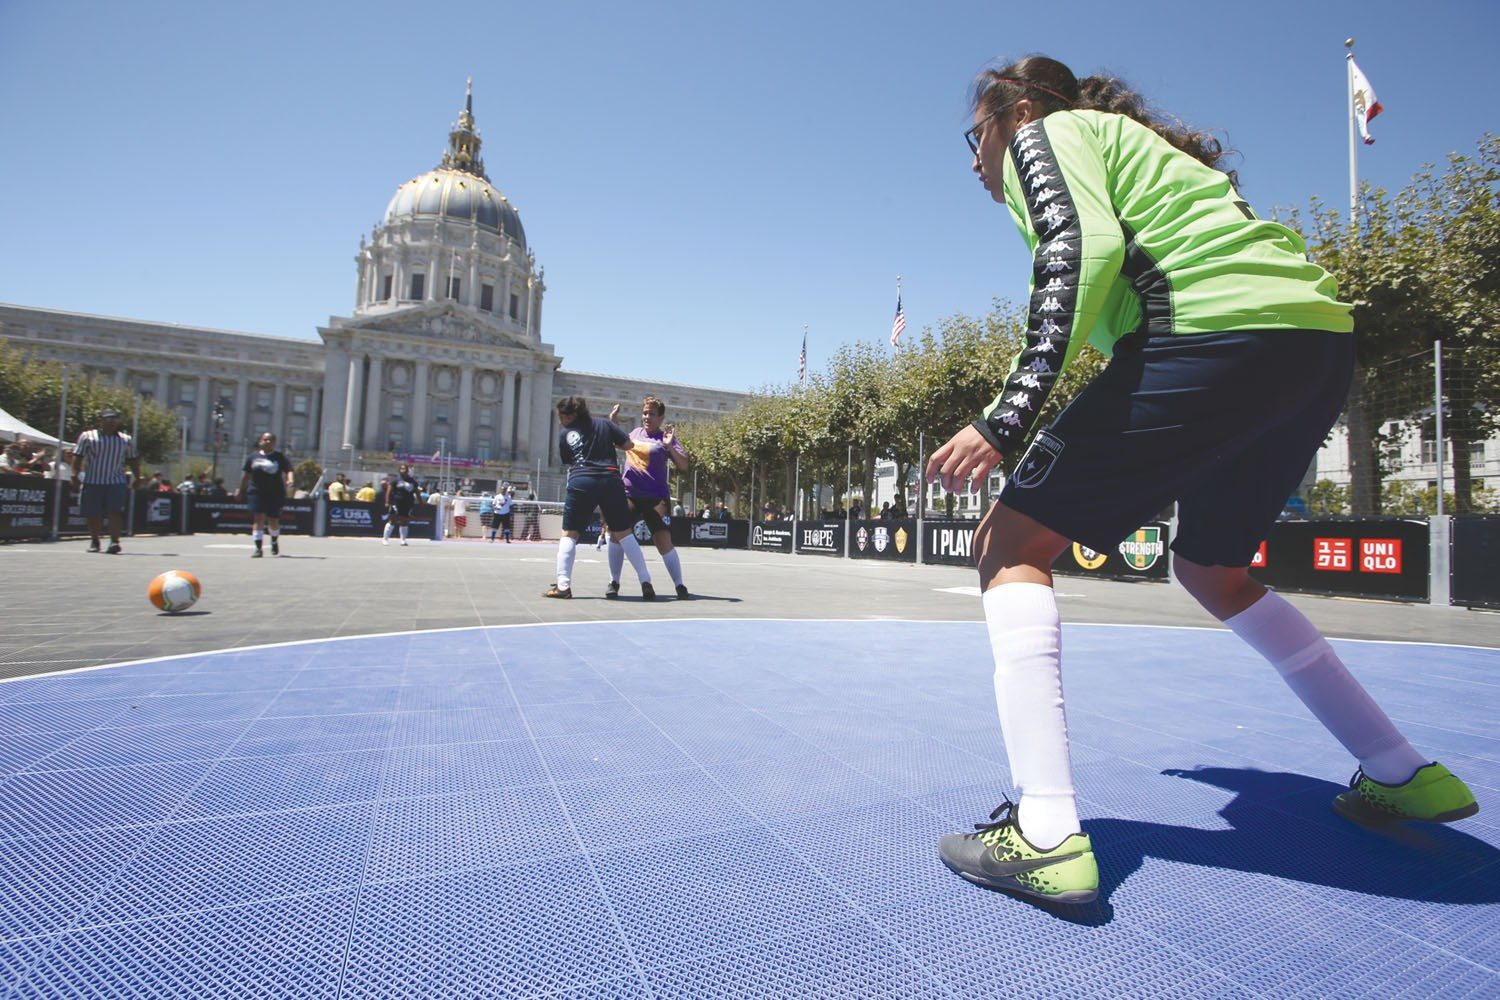 mike koozmin/the s.f. examinerStreet Soccer USA was in The City on Friday